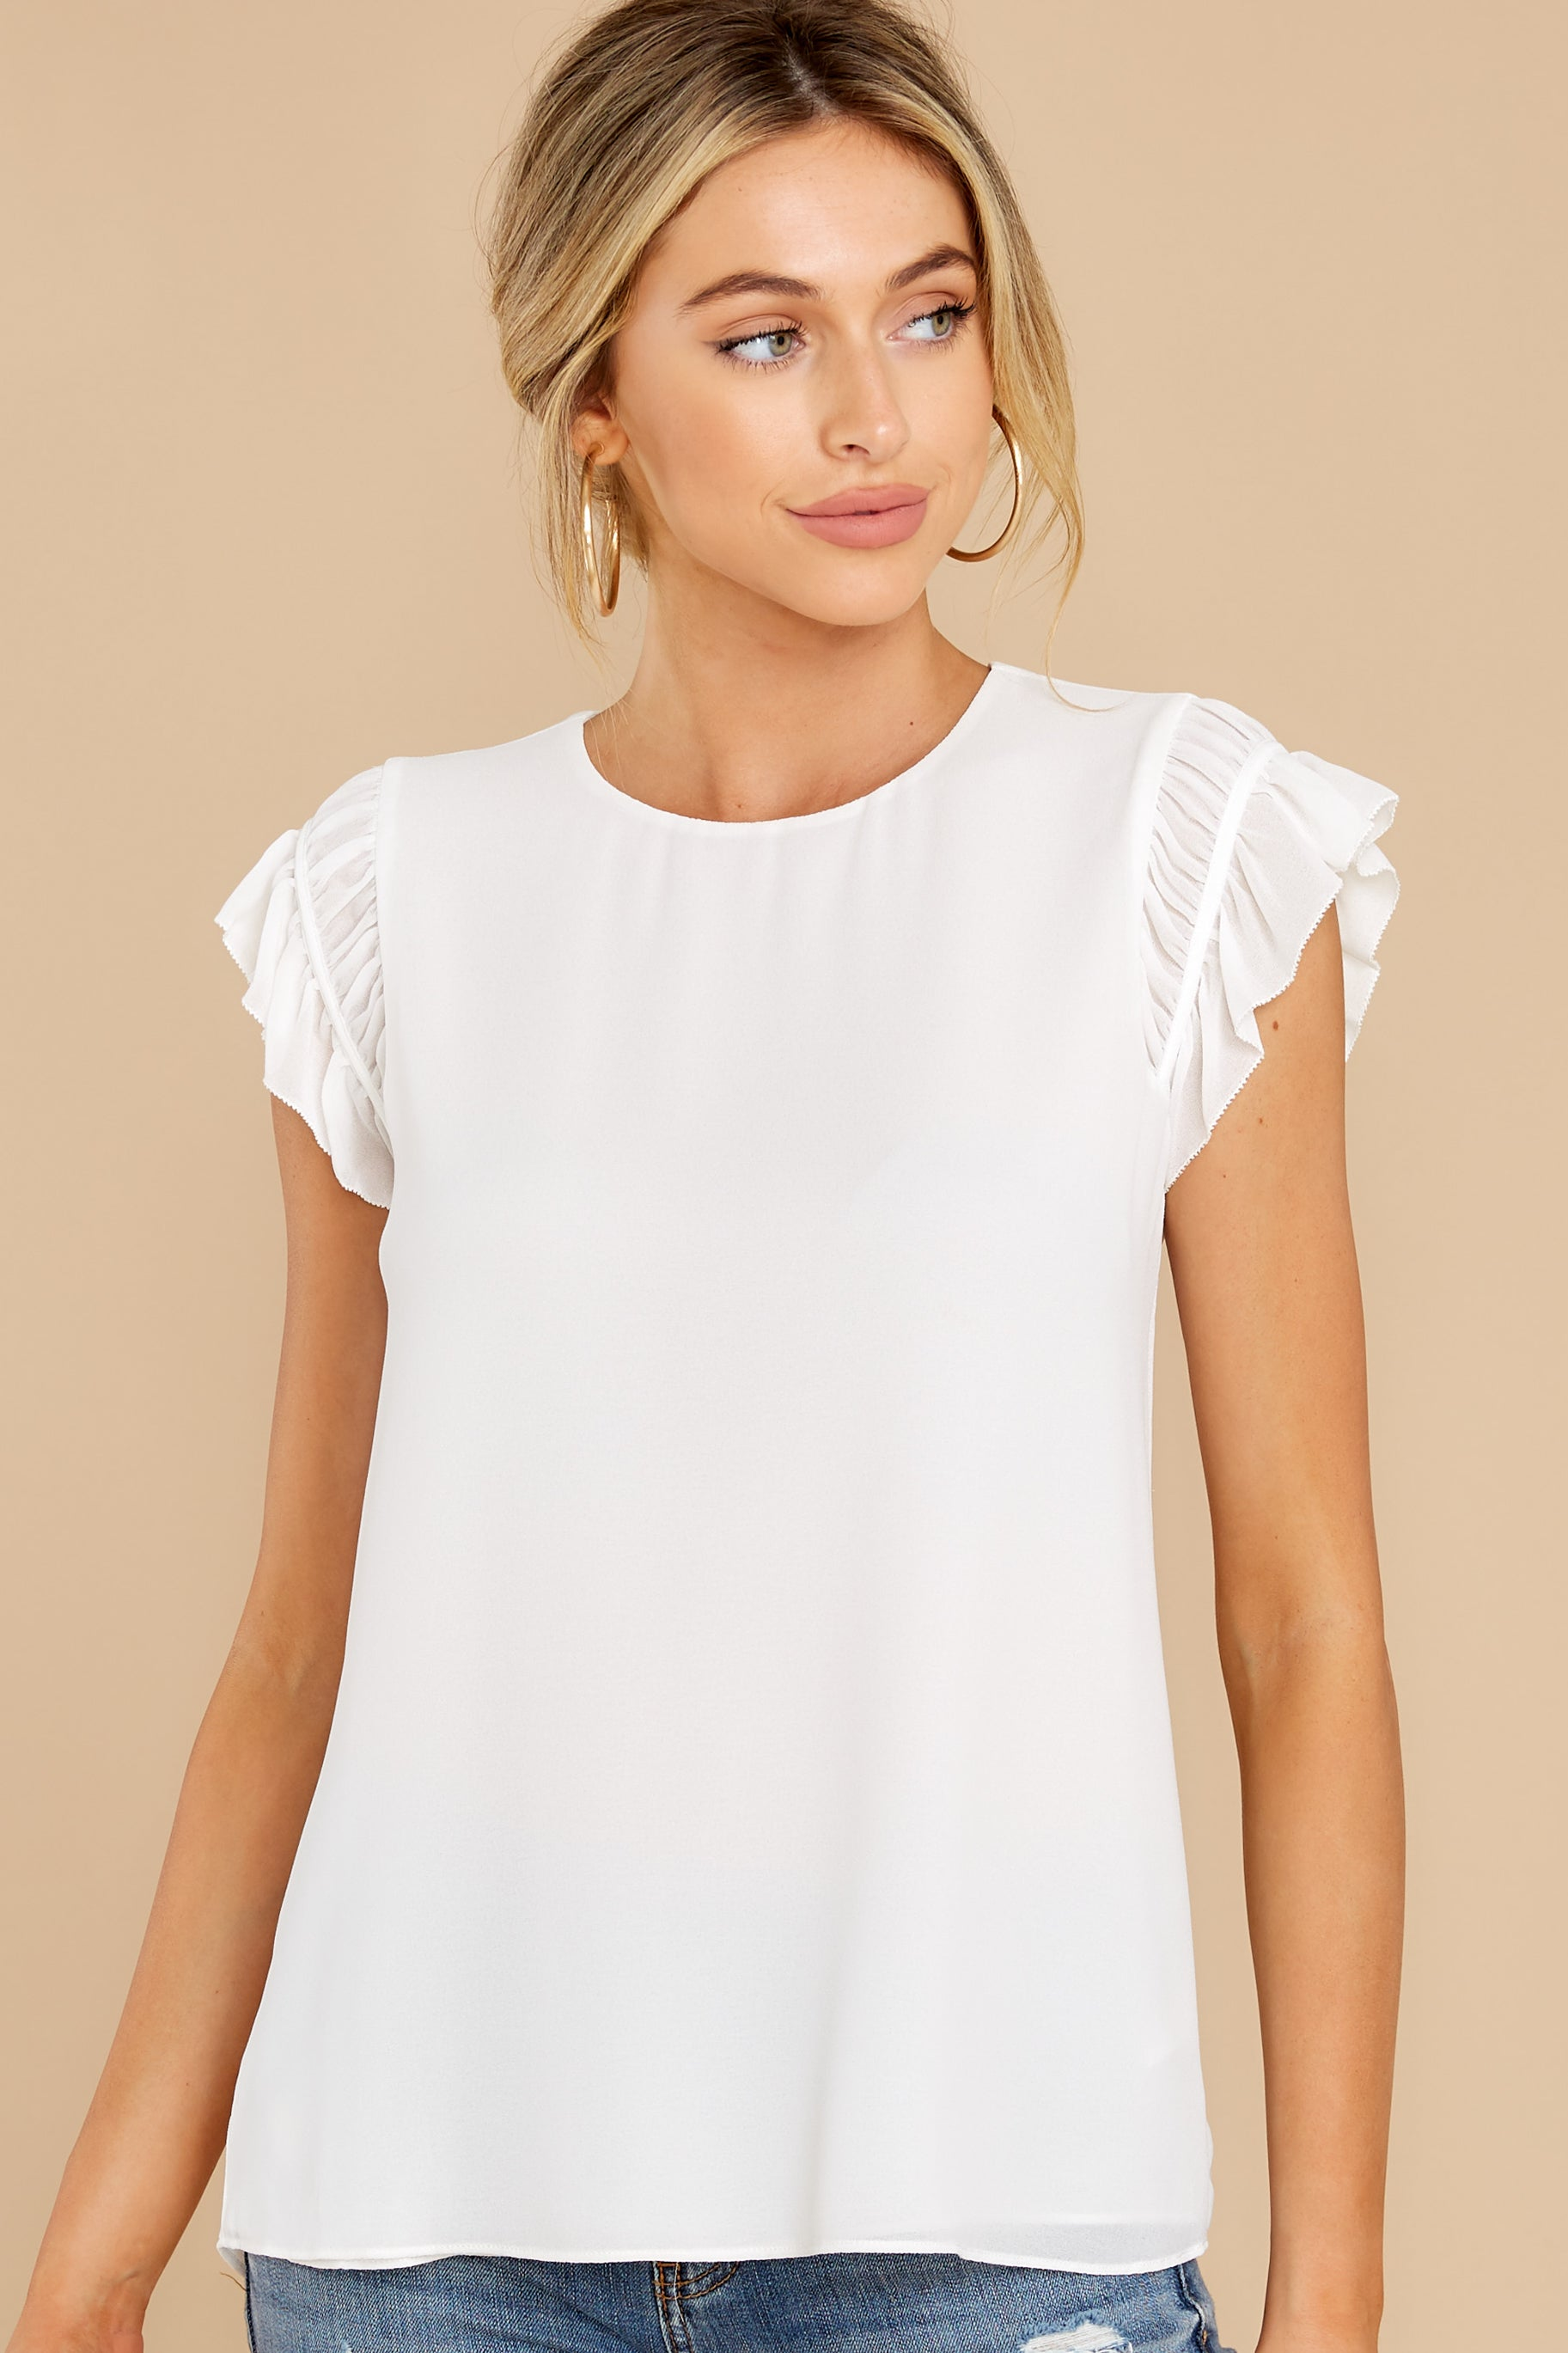 9 Sweetest Encounter White Top at reddress.com